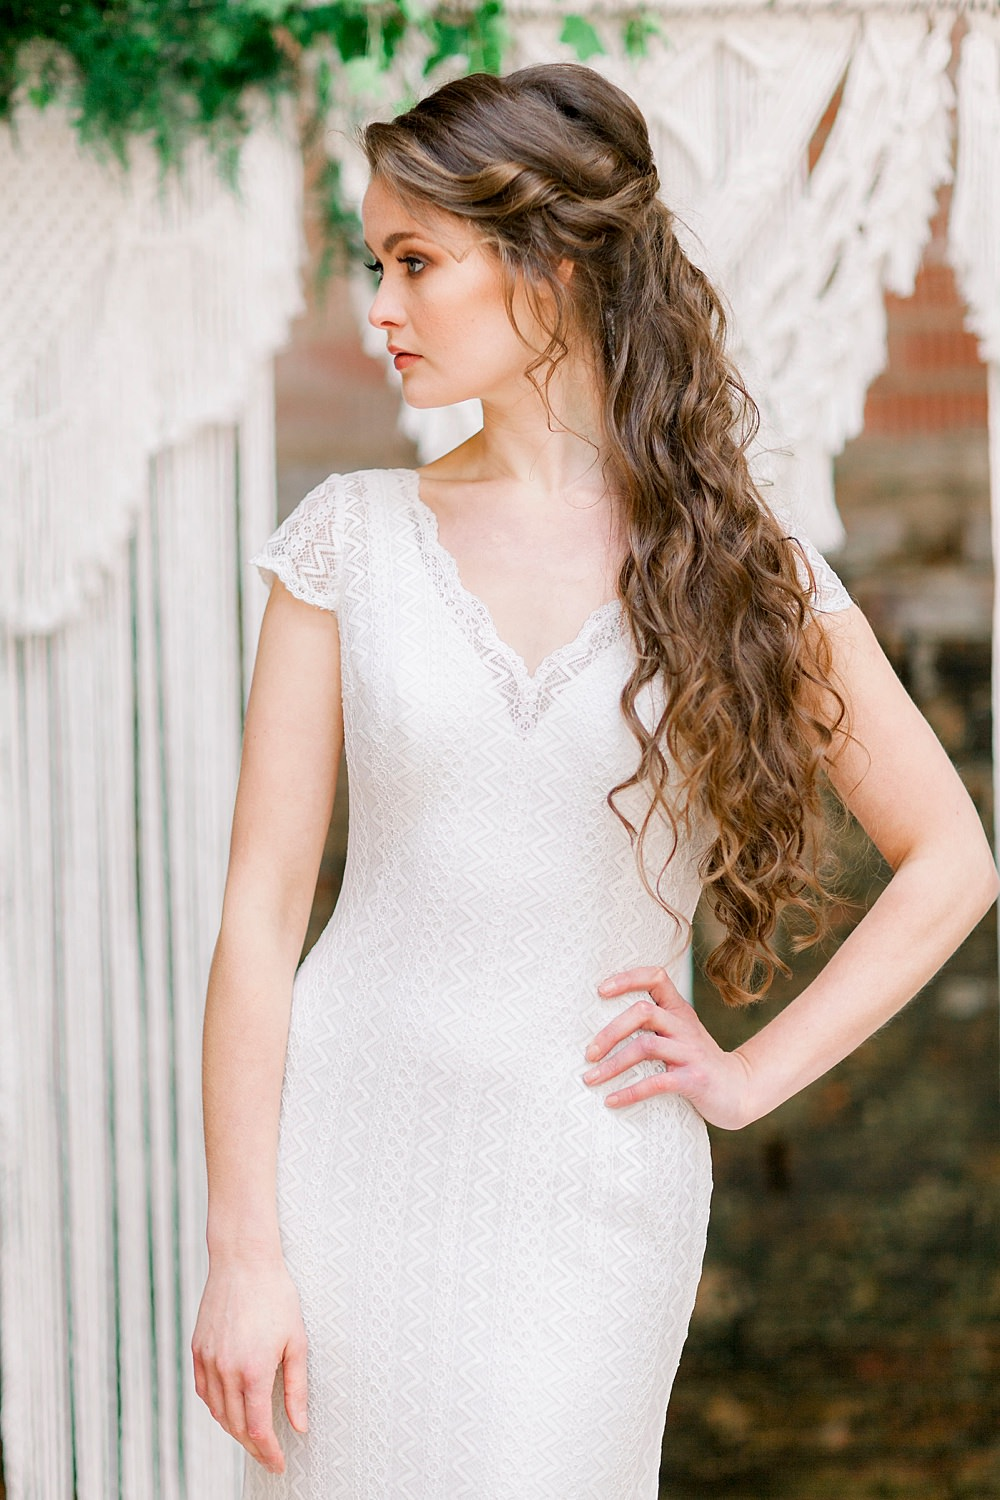 Dress Gown Bride Bridal Stelfox Bride Lace Cap Sleeves Natural Boho Industrial Wedding Ideas Jo Bradbury Photography